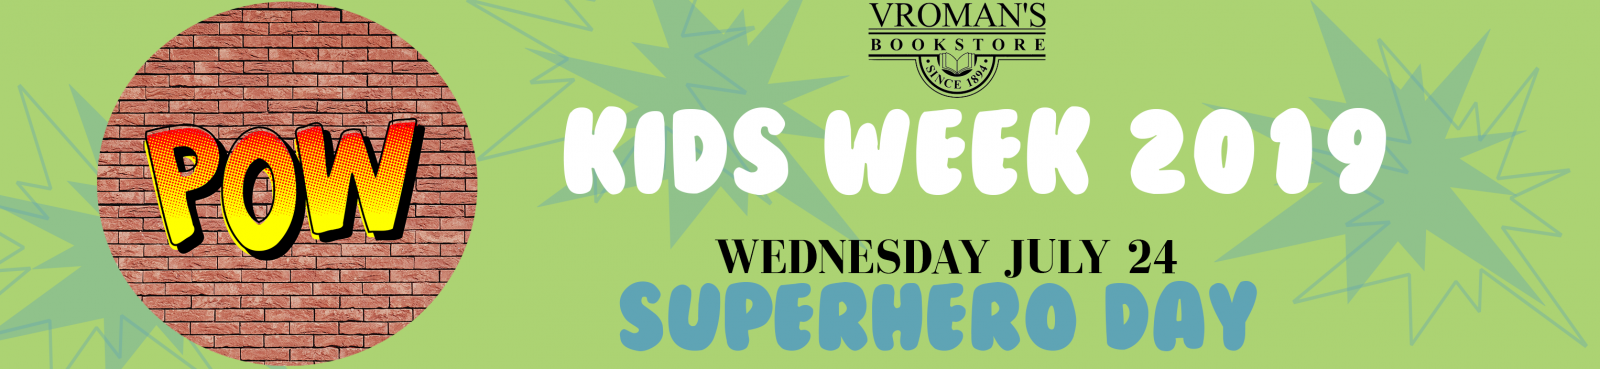 Kids Week - Superhero Day Wednesday July 24th at 11am